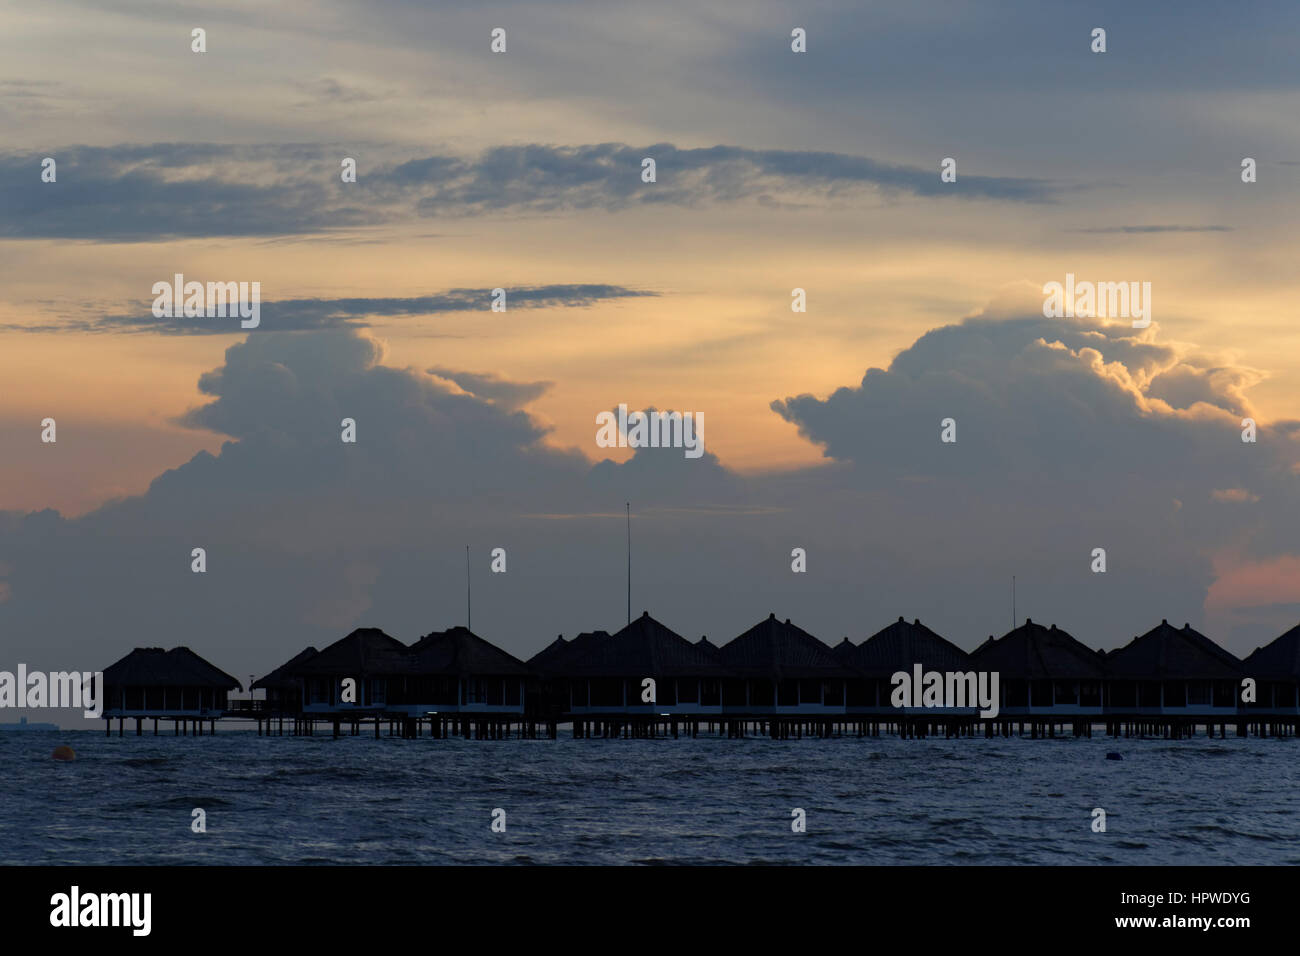 resort with villas on stilts at beach in Bagan Lalang, west coast Malaysia - Stock Image